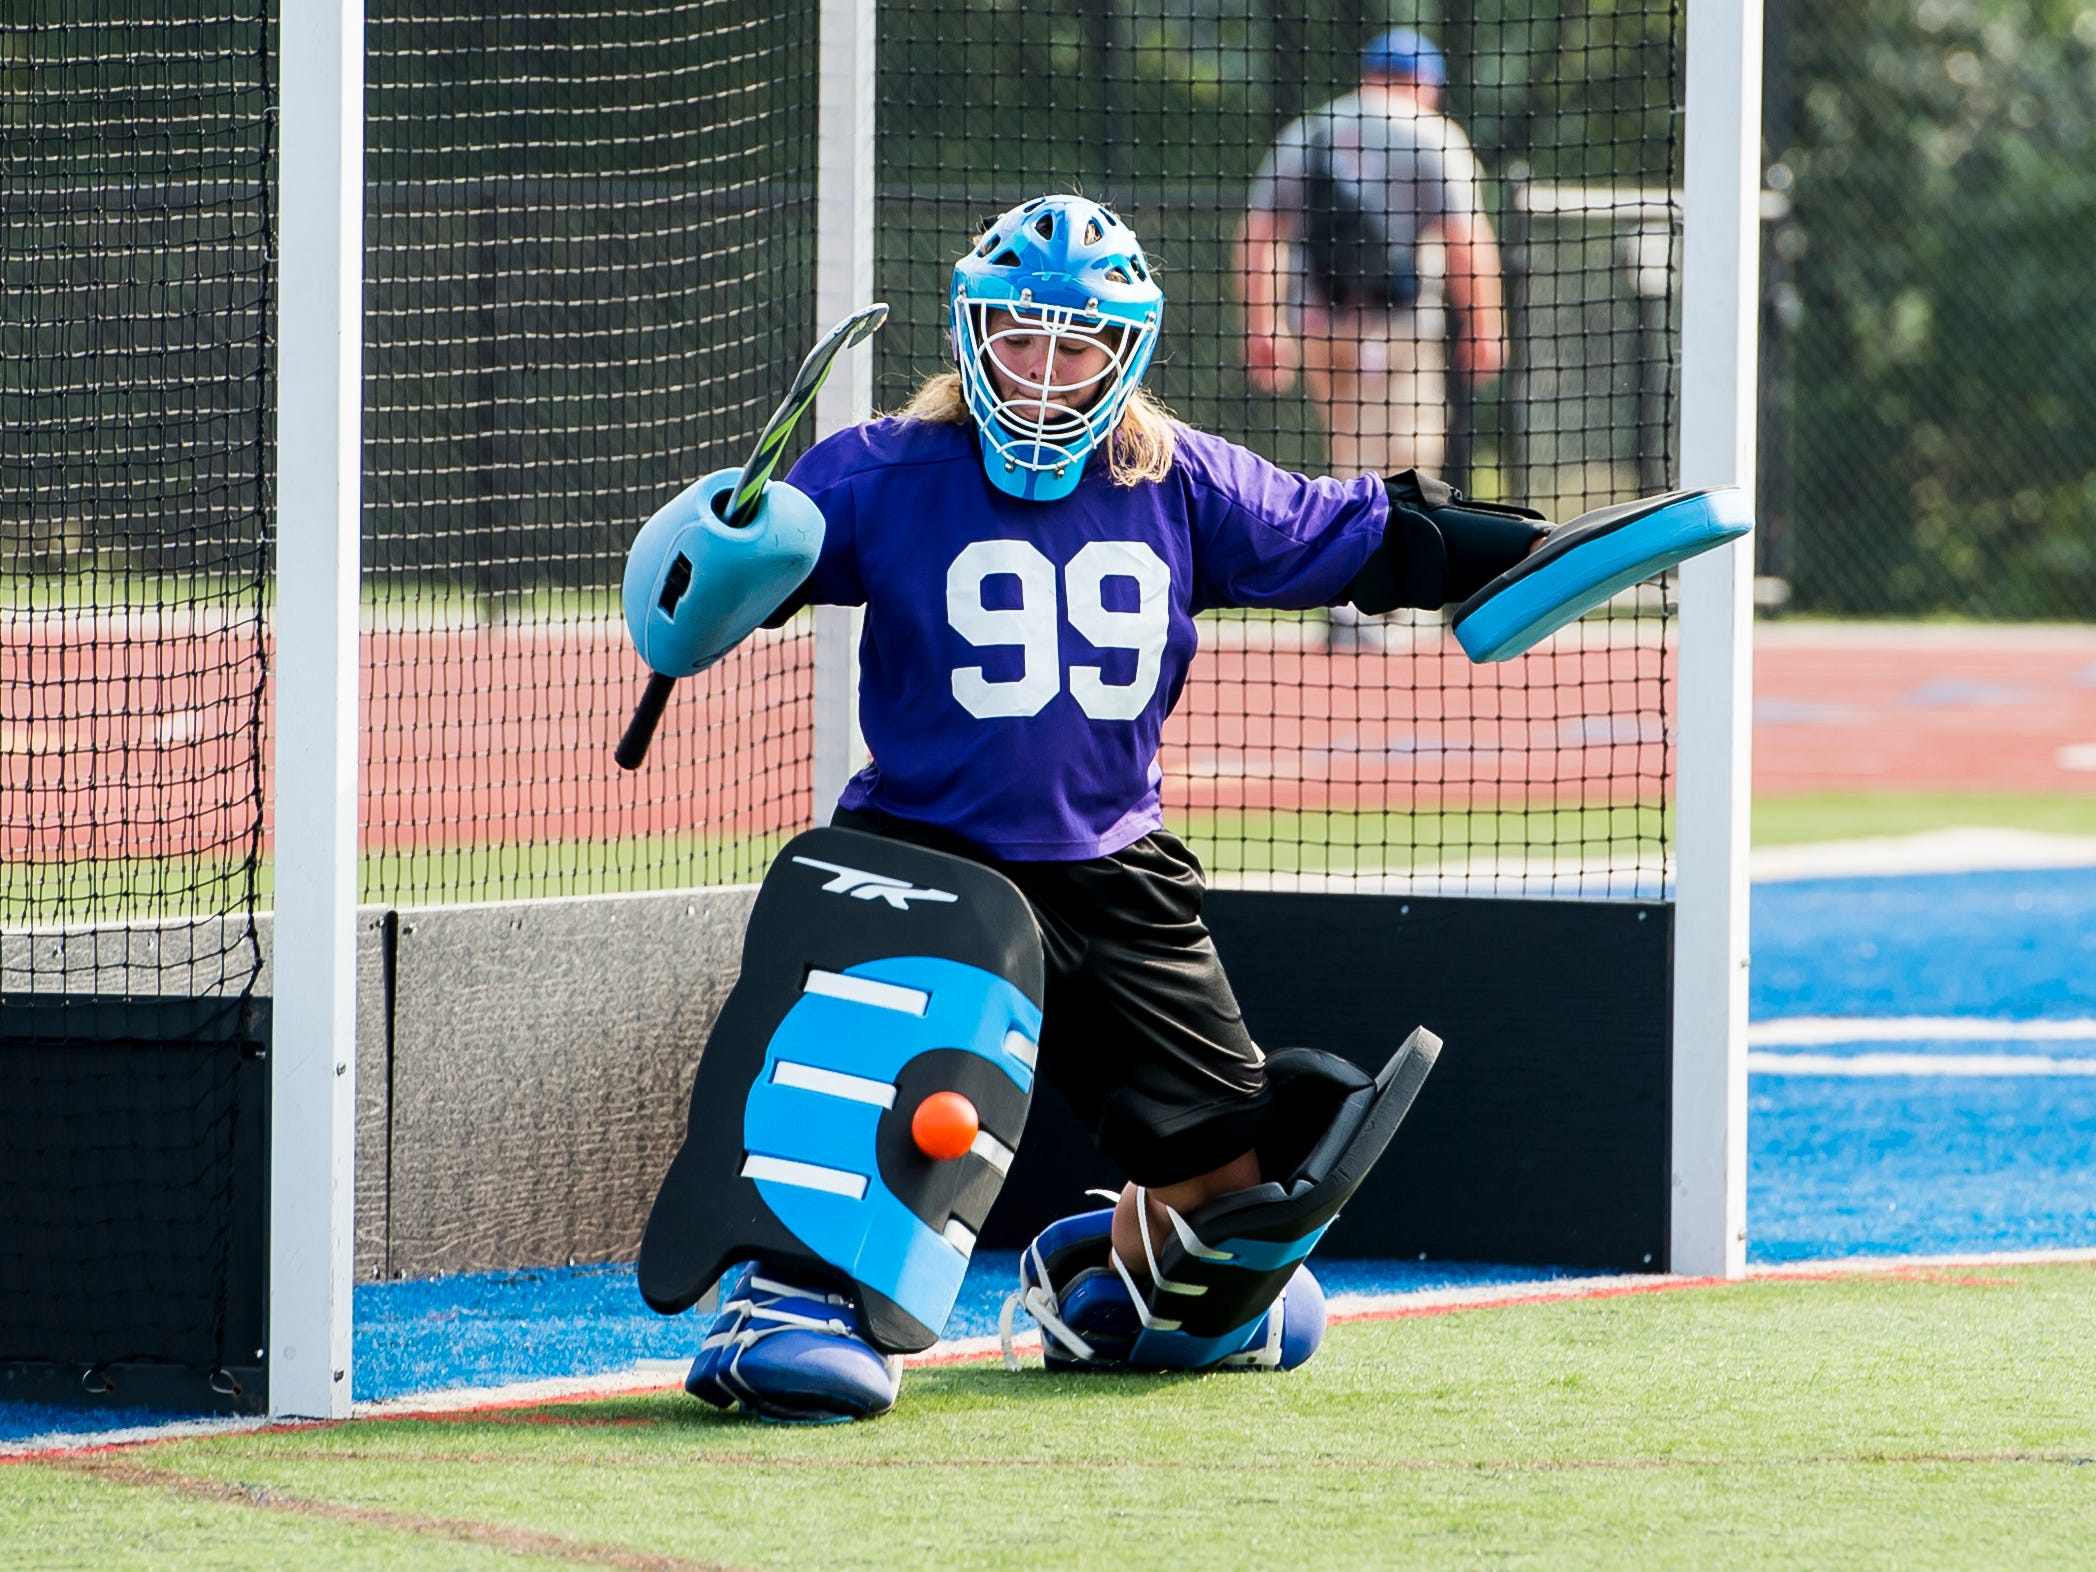 A Spring Grove field hockey goalkeeper blocks a shot during practice on Wednesday, August 15, 2018.